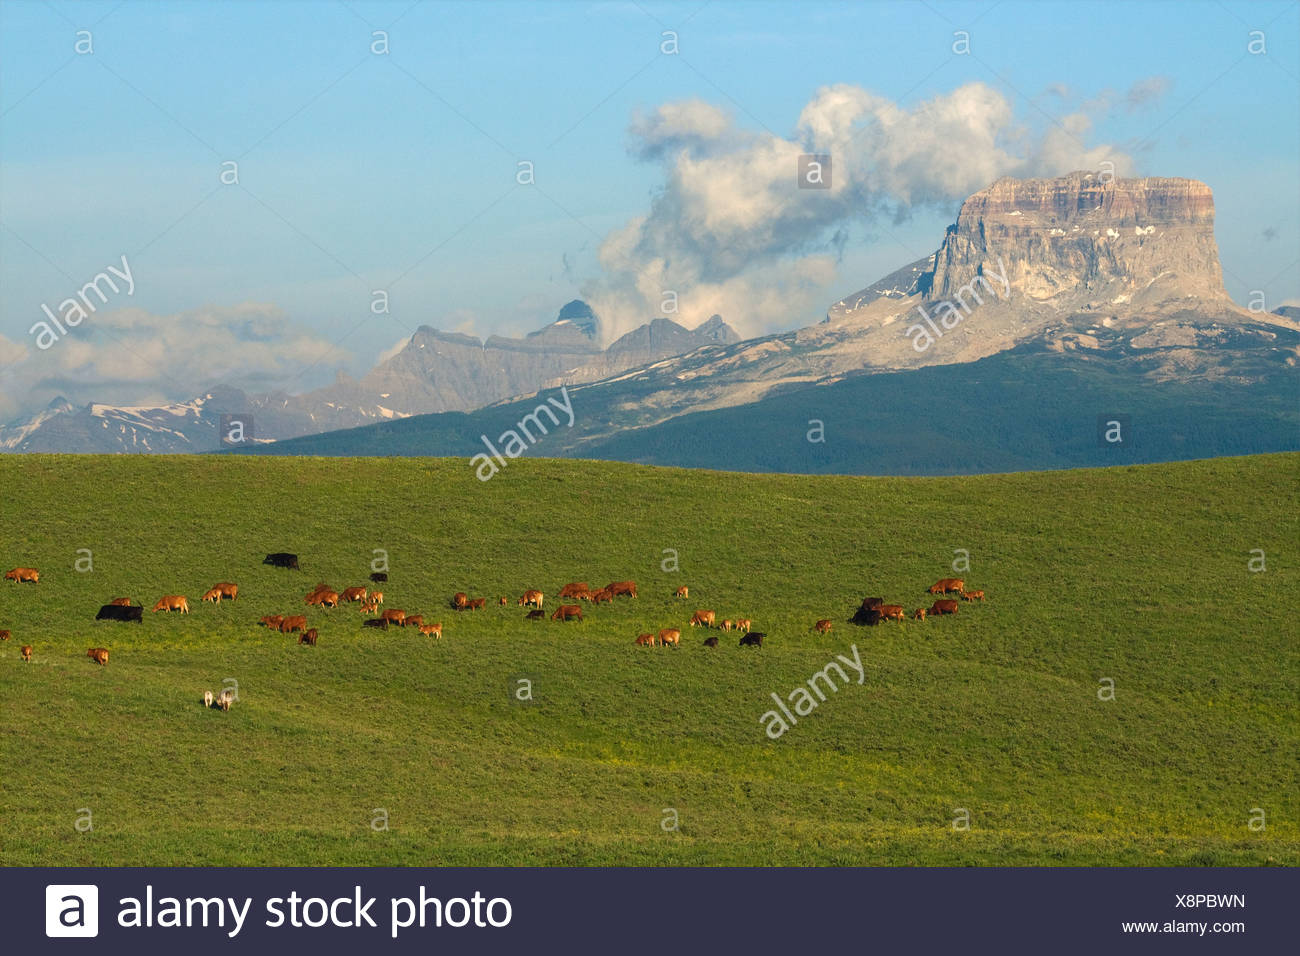 Mixed breed cows and calves grazing on a green foothill pasture with the Canadian Rockies in the background / Alberta, Canada. - Stock Image